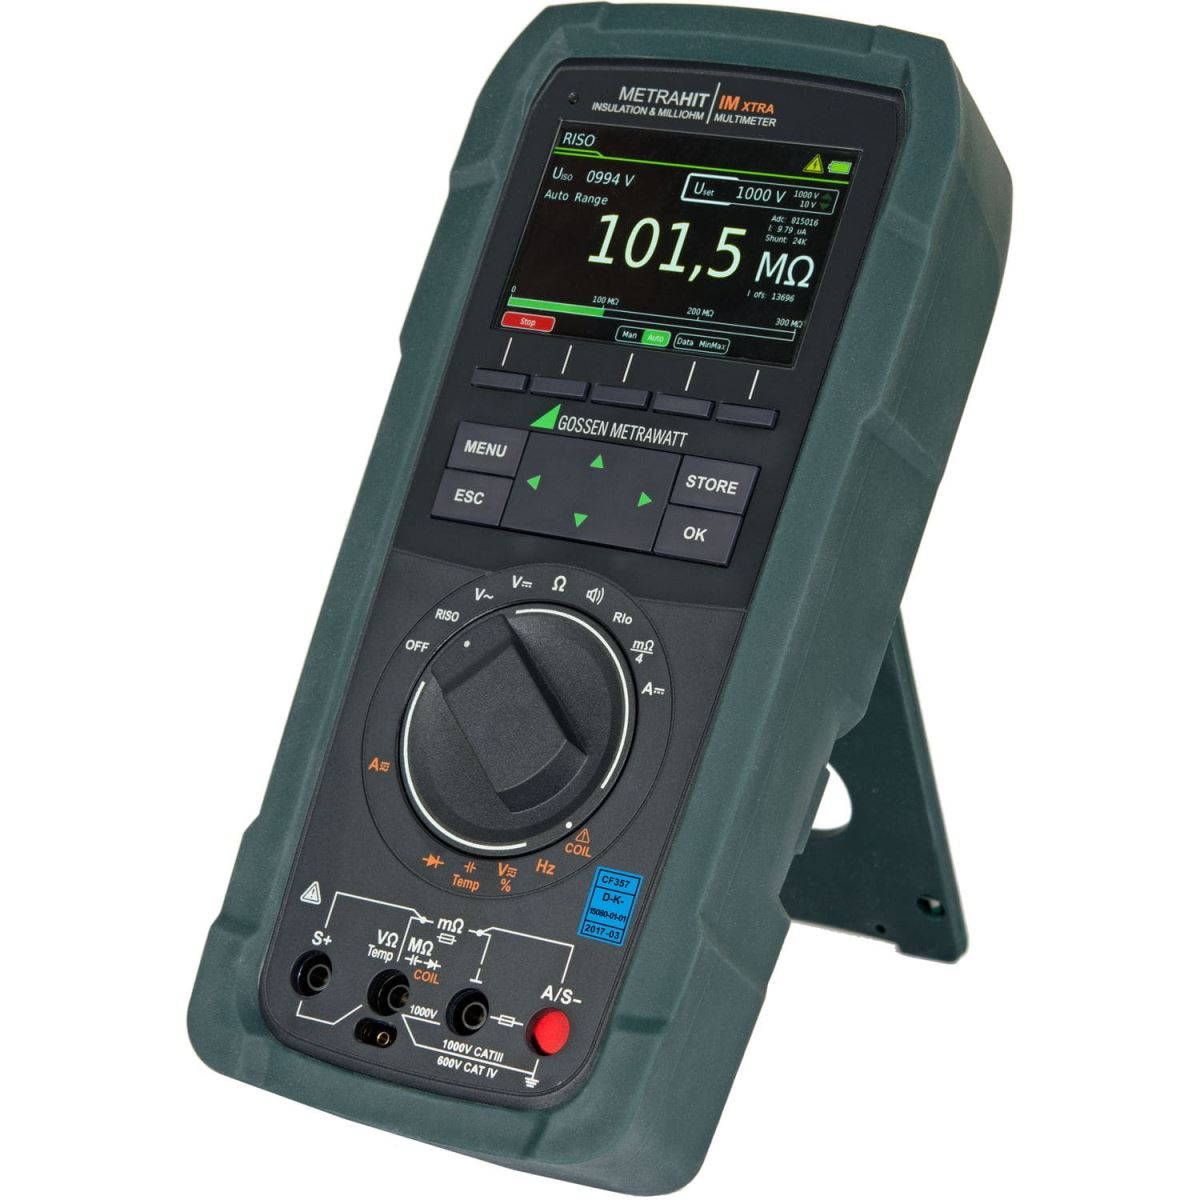 MetraHIT IM-XTRA: All-in-One: Multimeter en Milliohmmeter, Isolatieweerstandsmeter, Coil Tester en Data Logger